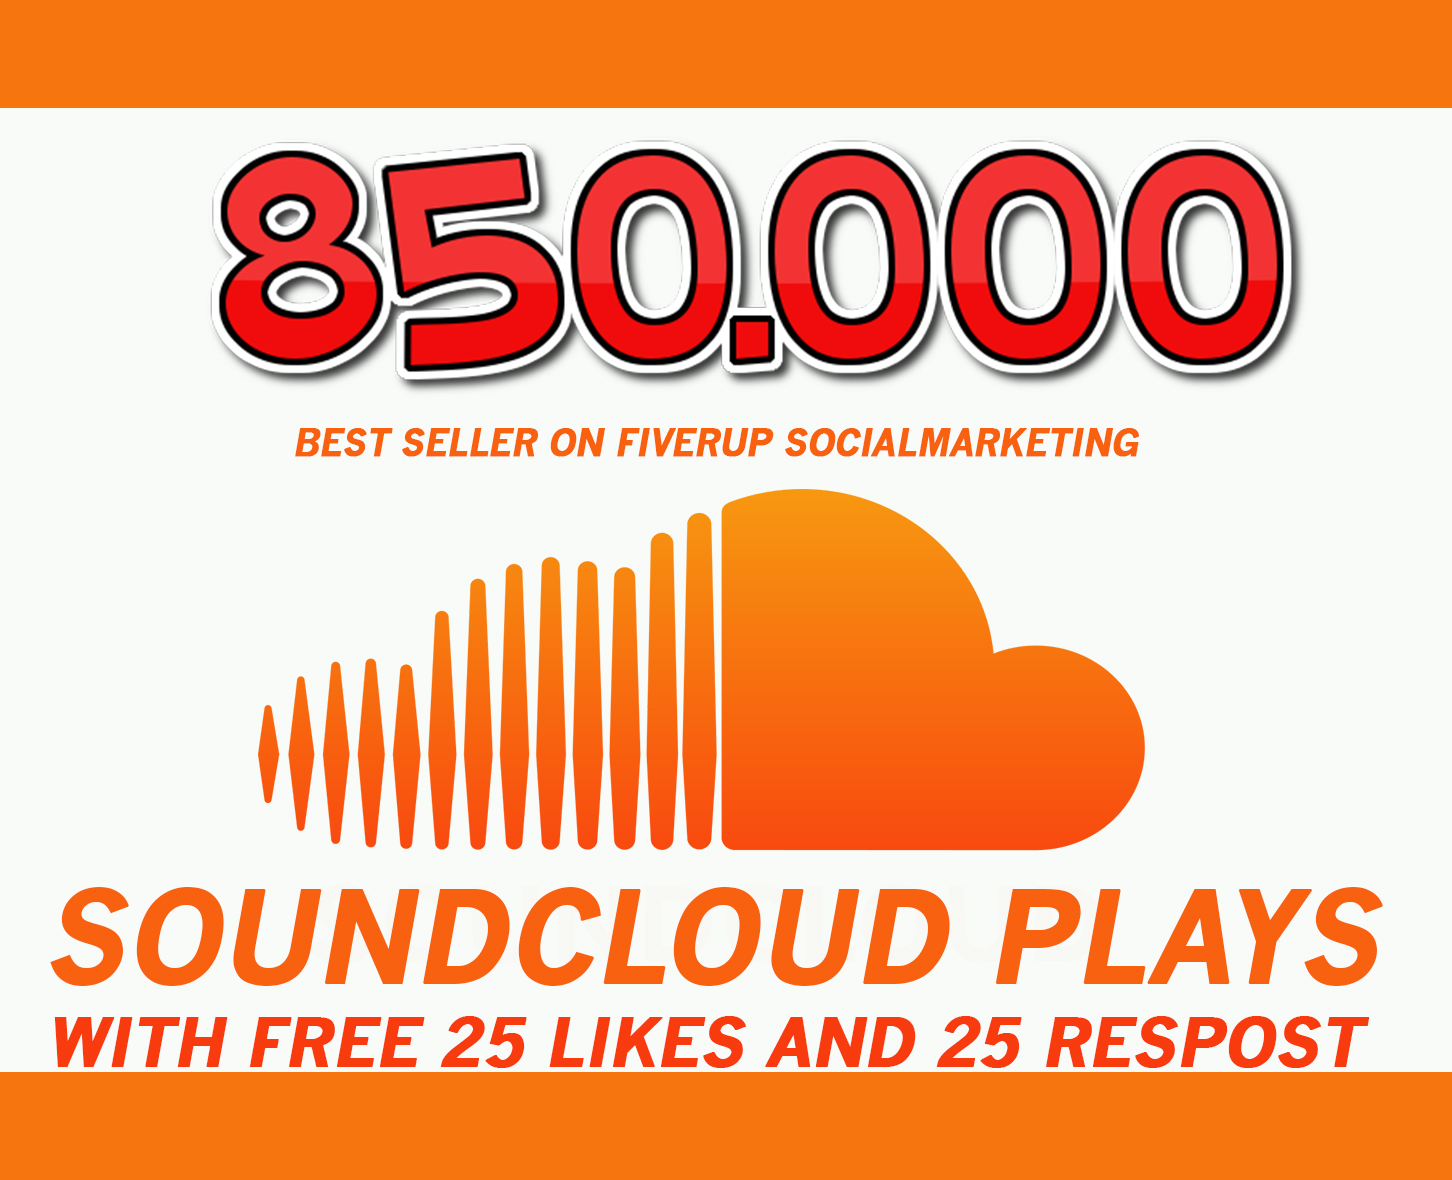 850,000 SOUNDCLOUD Plays with free 25 Likes and 25 reposts